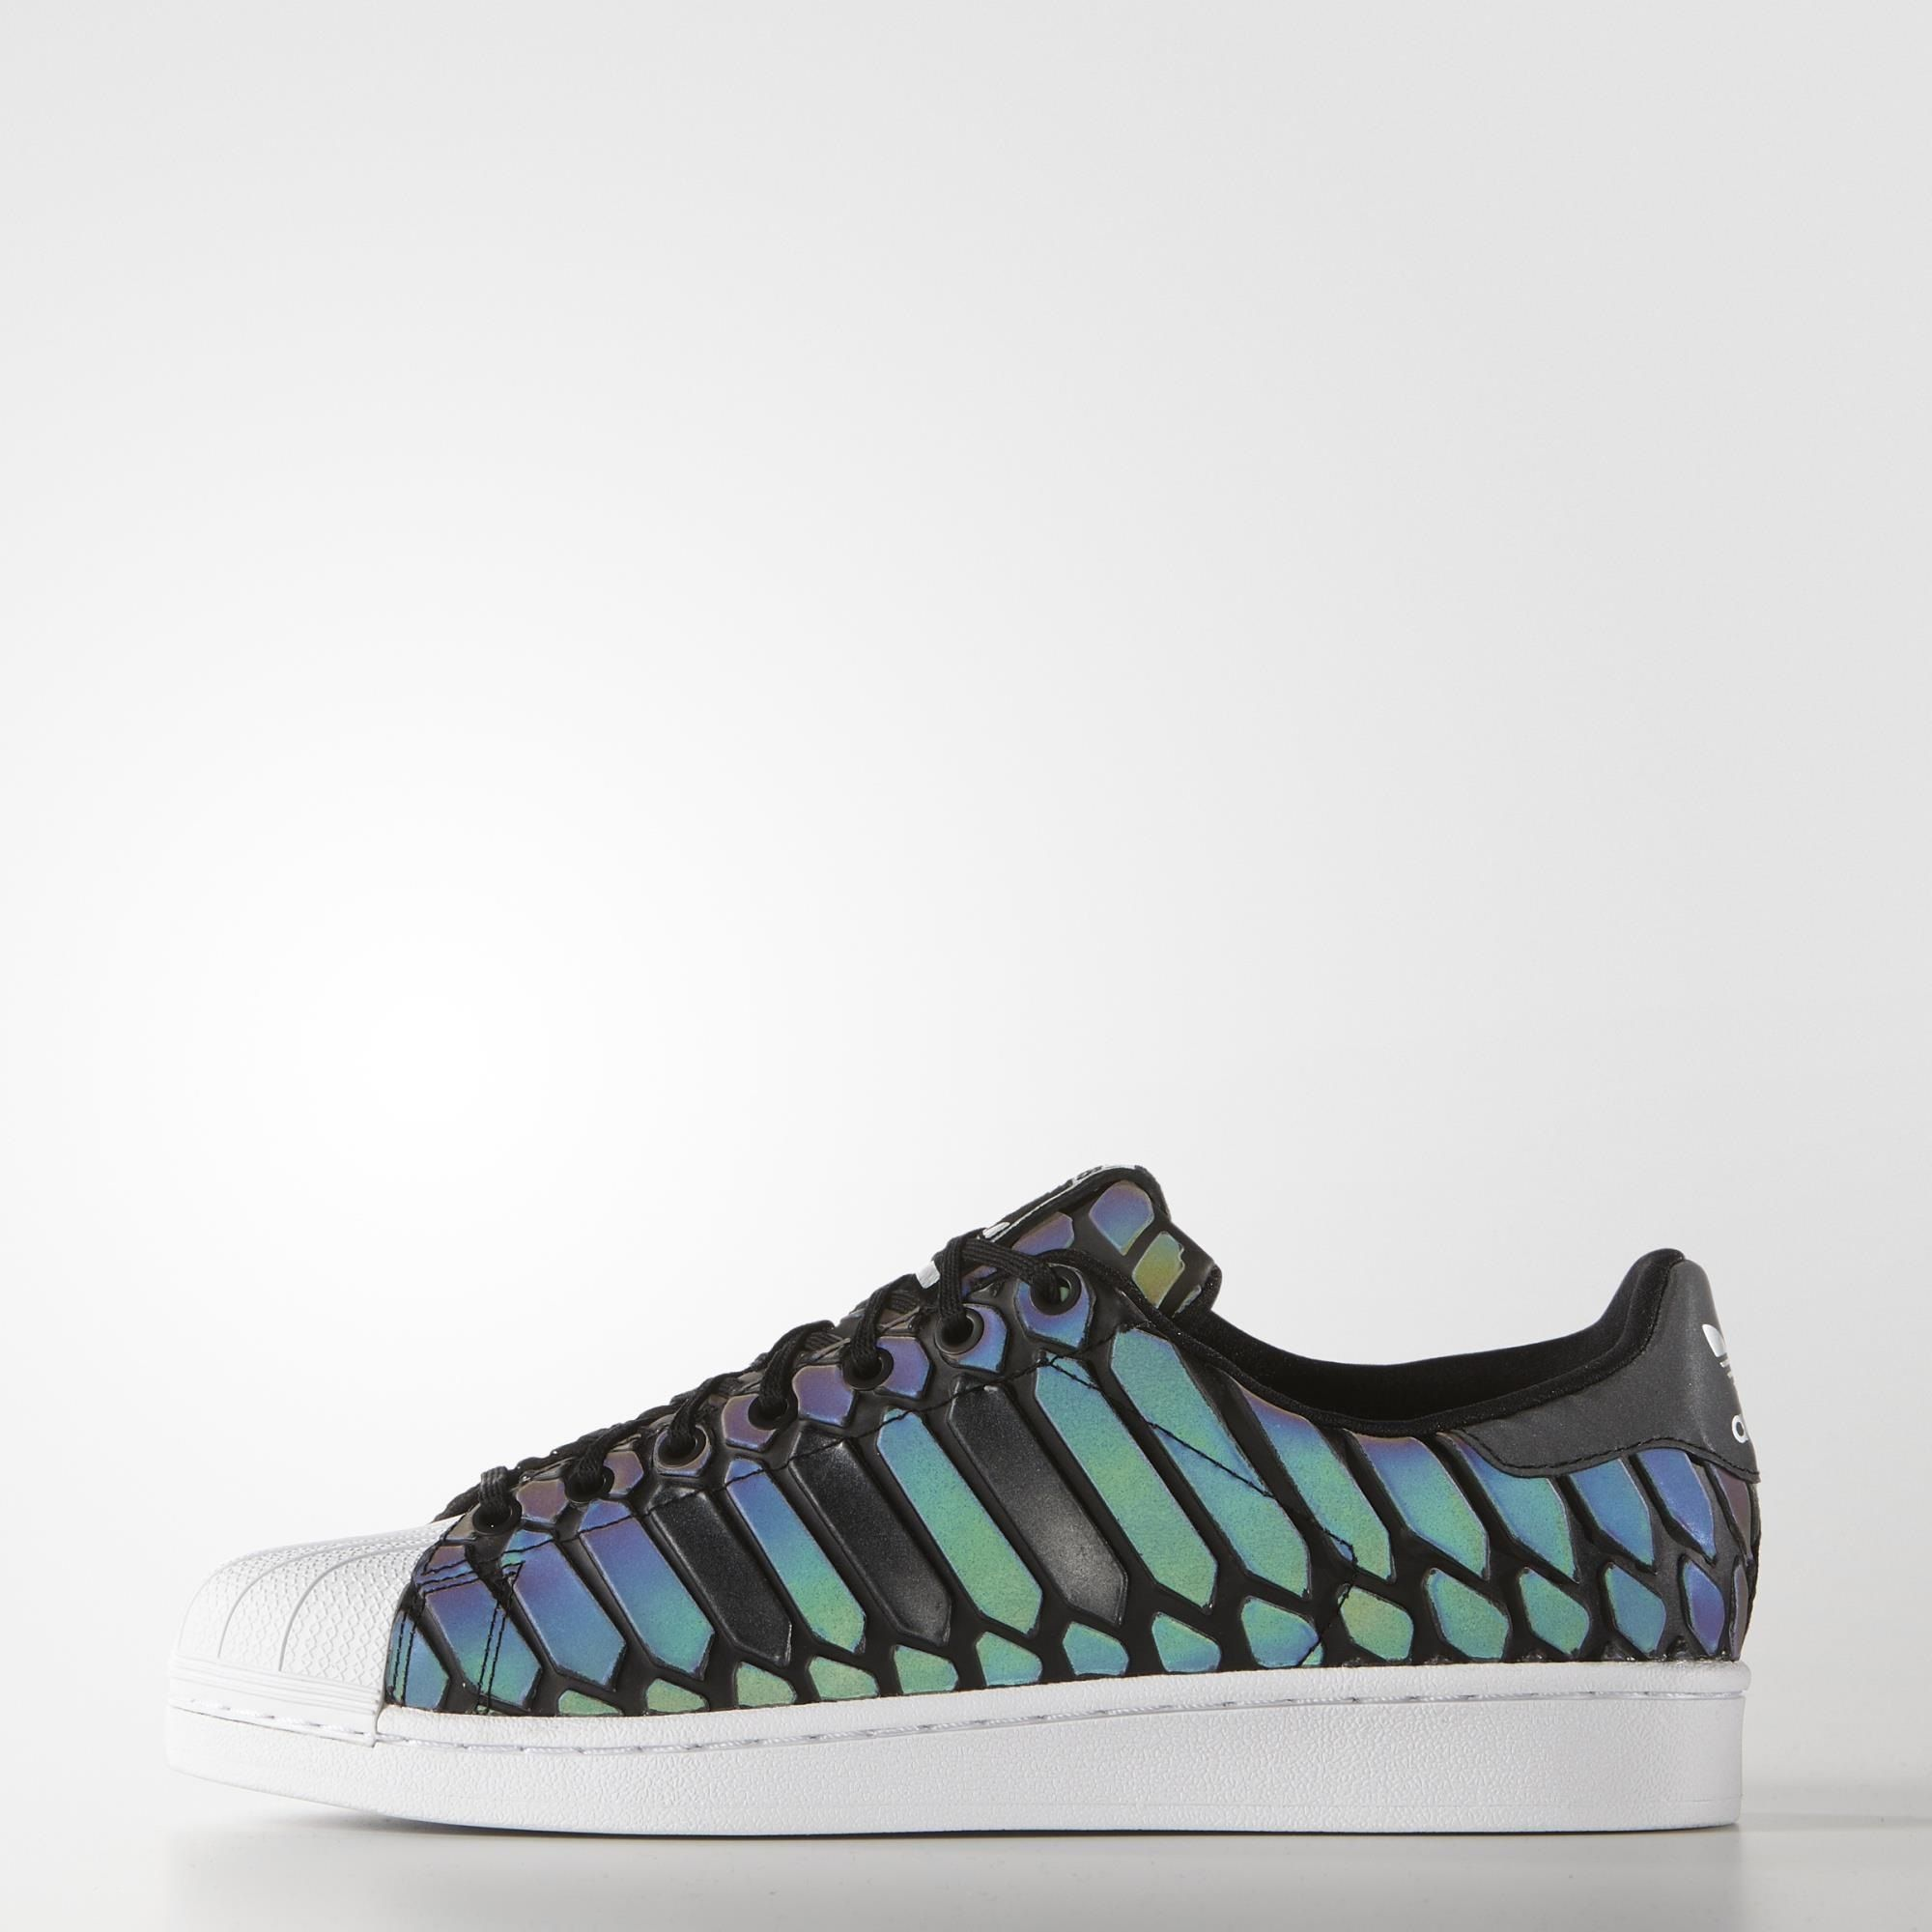 detailed look f5d94 7e388 The adidas Originals Superstar has a brand-new skin. The 3D reflective  surface of Adidas - Superstar Xeno